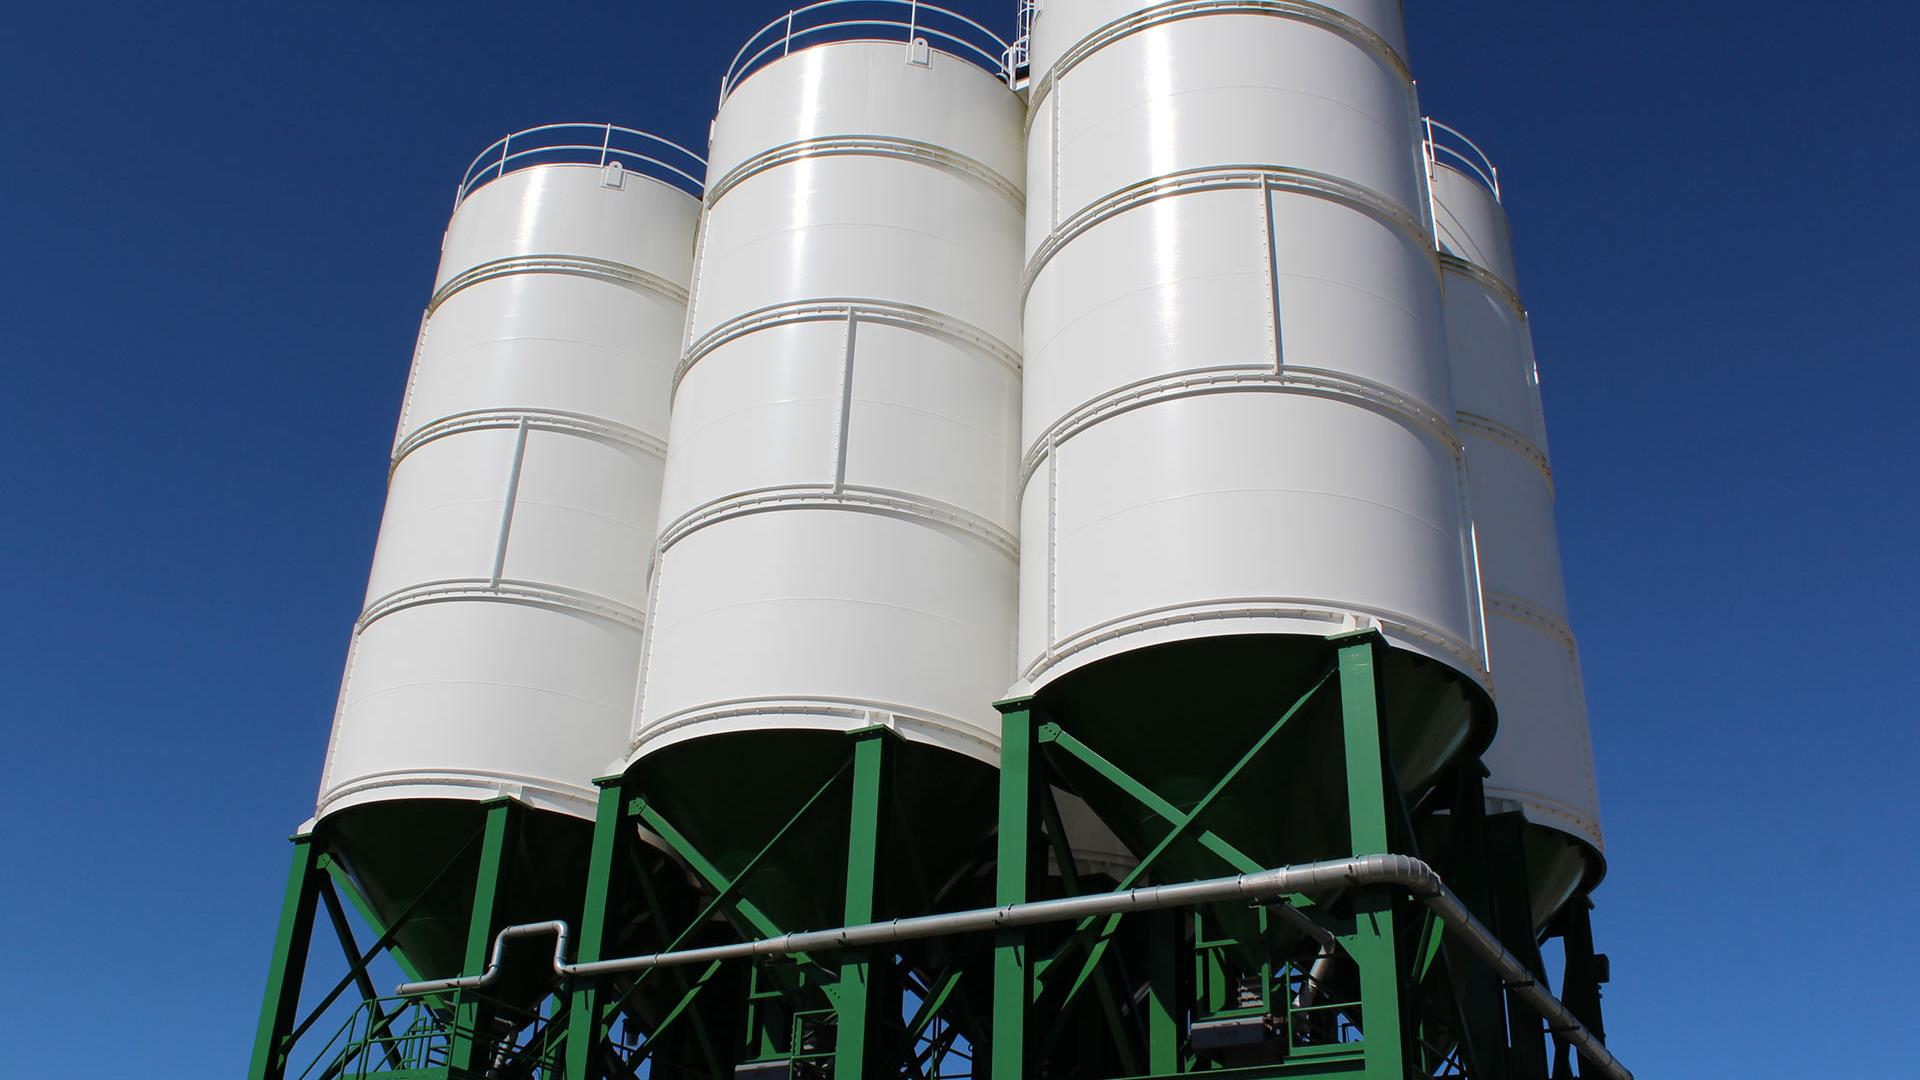 Six APPCO High-volume Storage Silos